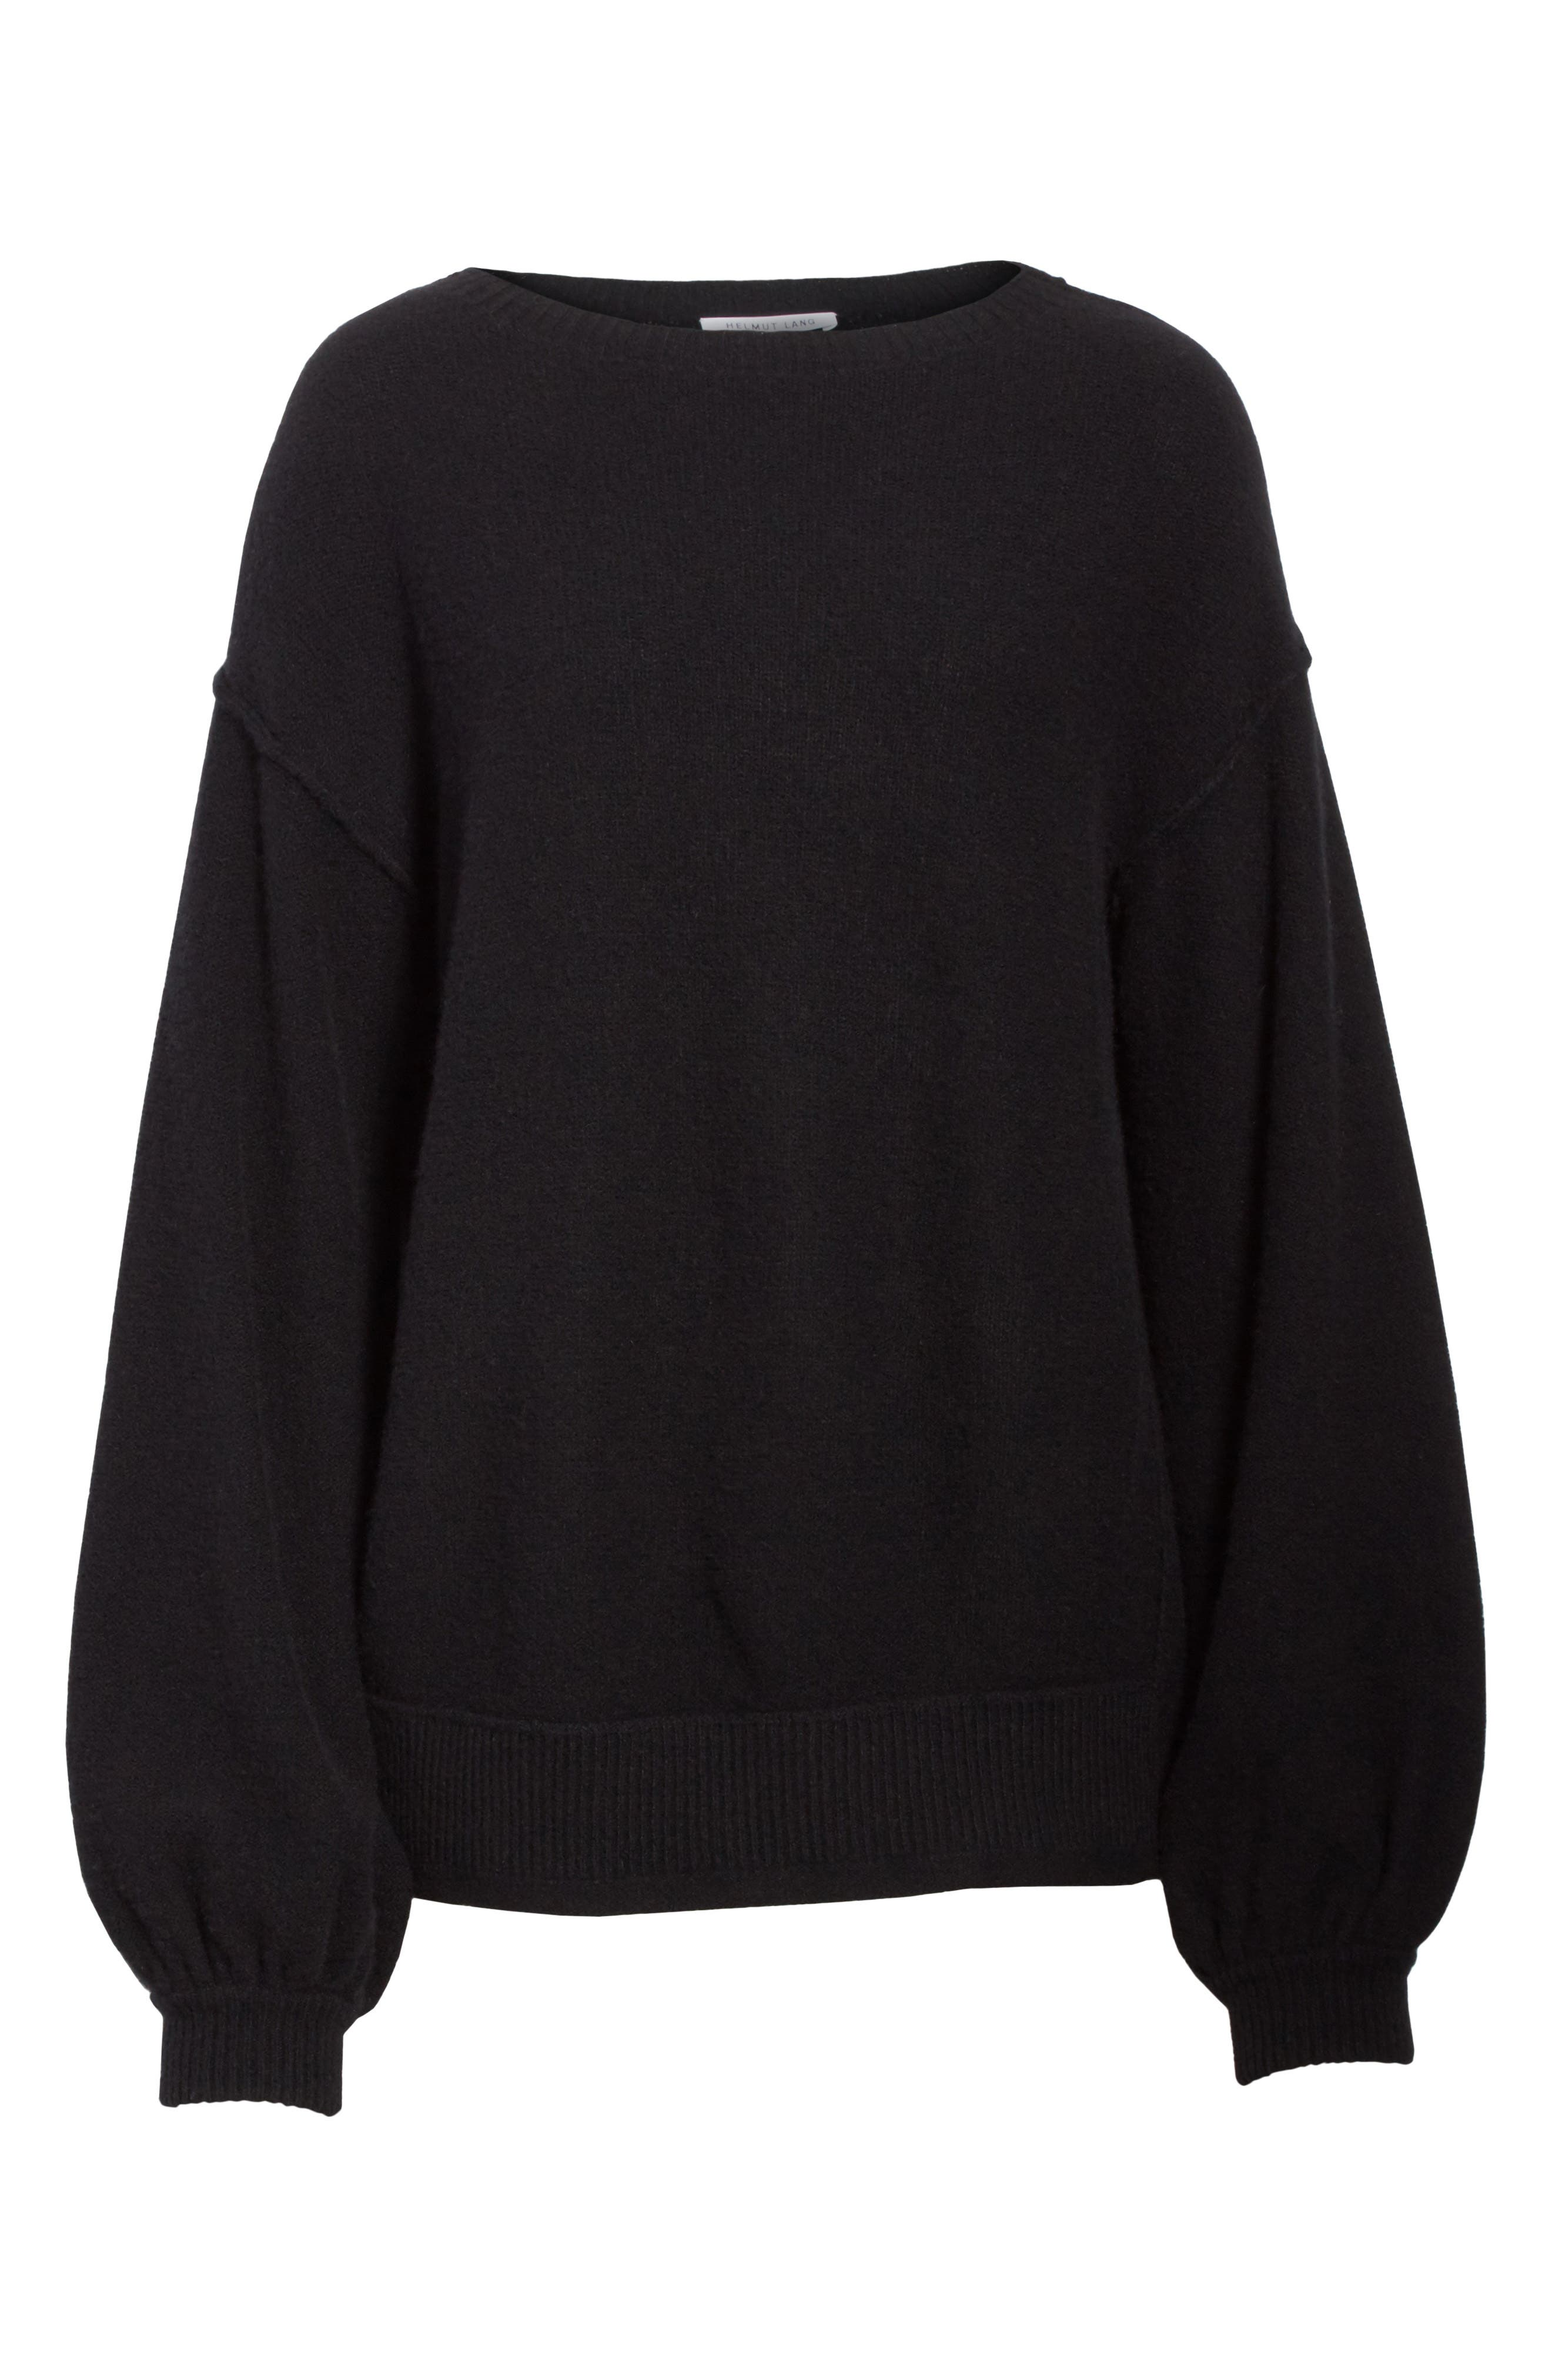 Balloon Sleeve Wool & Cashmere Sweater,                             Alternate thumbnail 7, color,                             Black